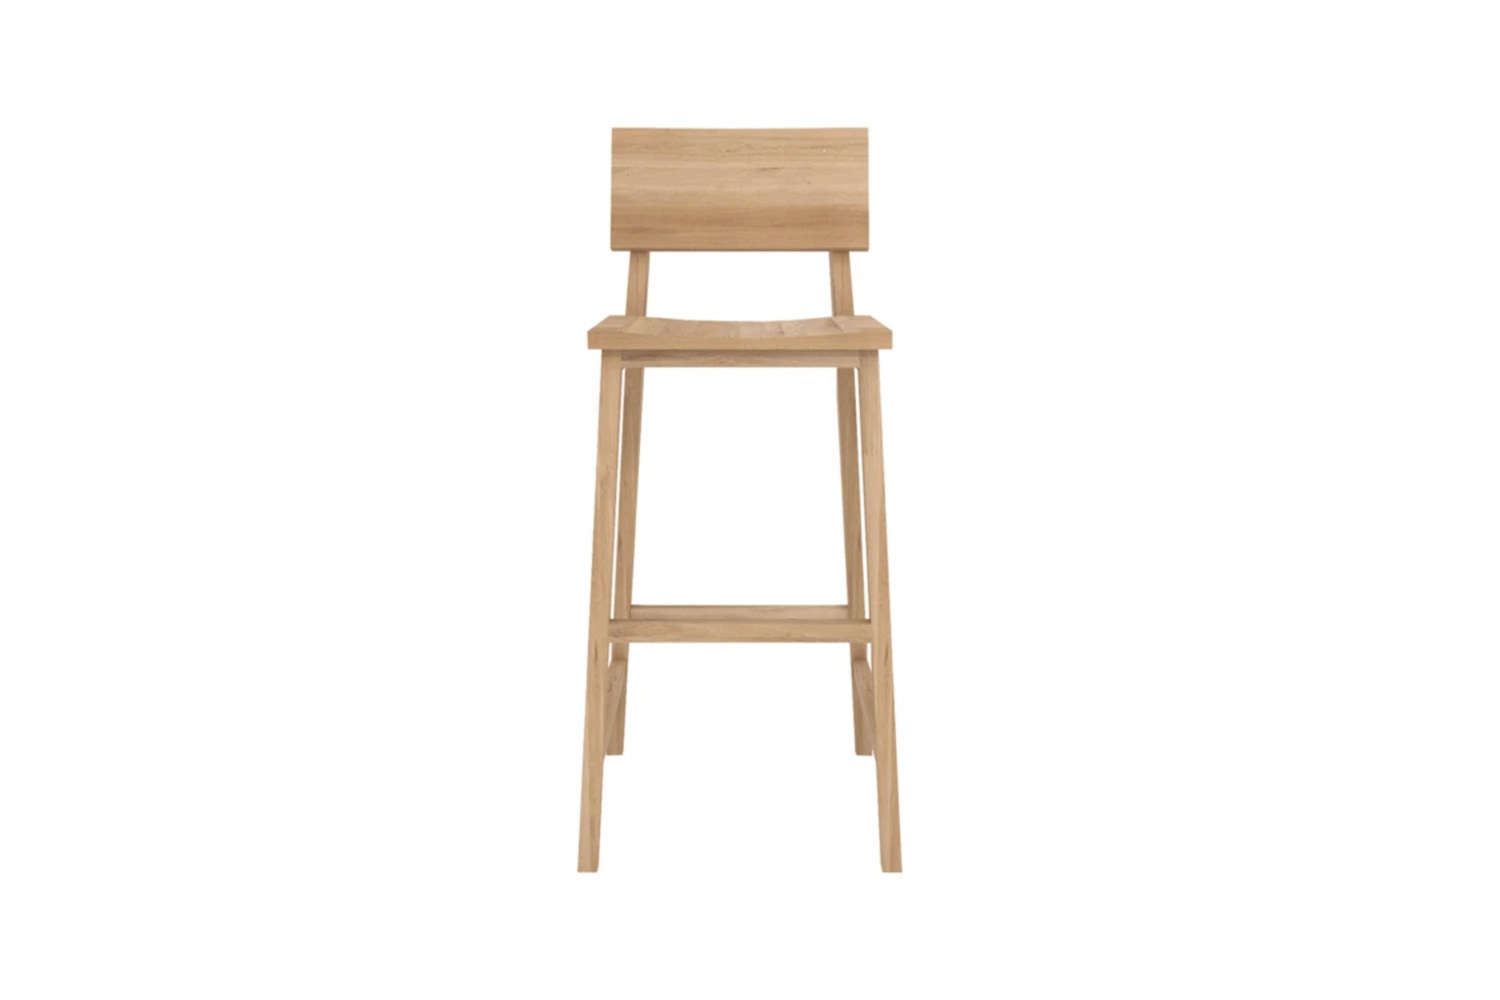 From Ethnicraft, the N4 Counter Stool in solid oak is $359 at Lekker Home.